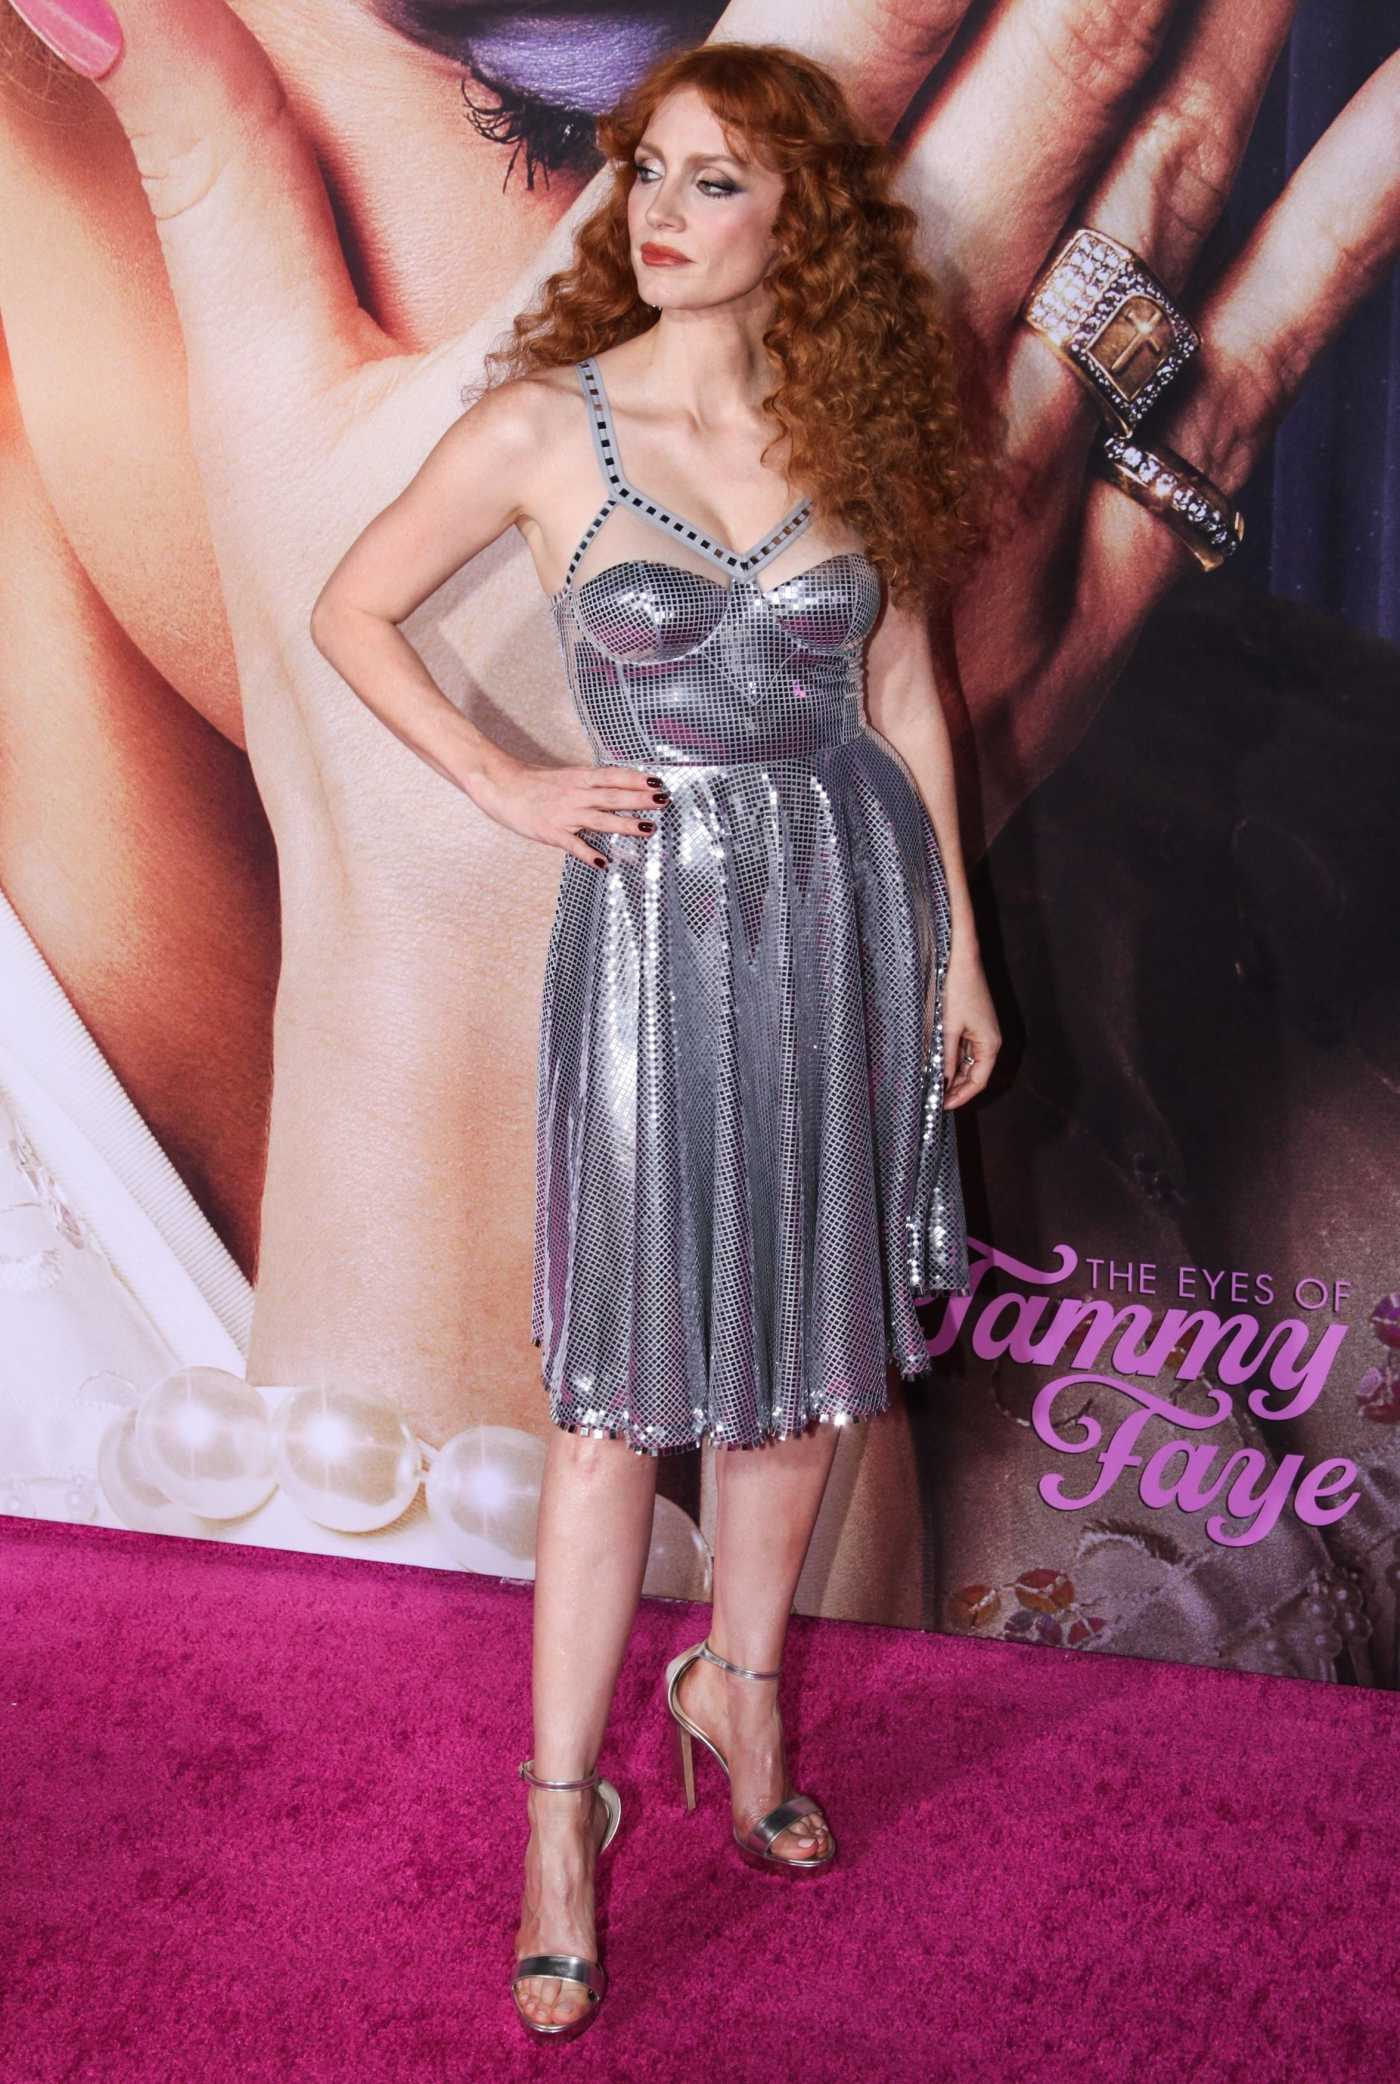 Jessica Chastain in a Silver Dress Attends The Eyes of Tammy Faye Premiere at SVA Theater in New York City 09/14/2021